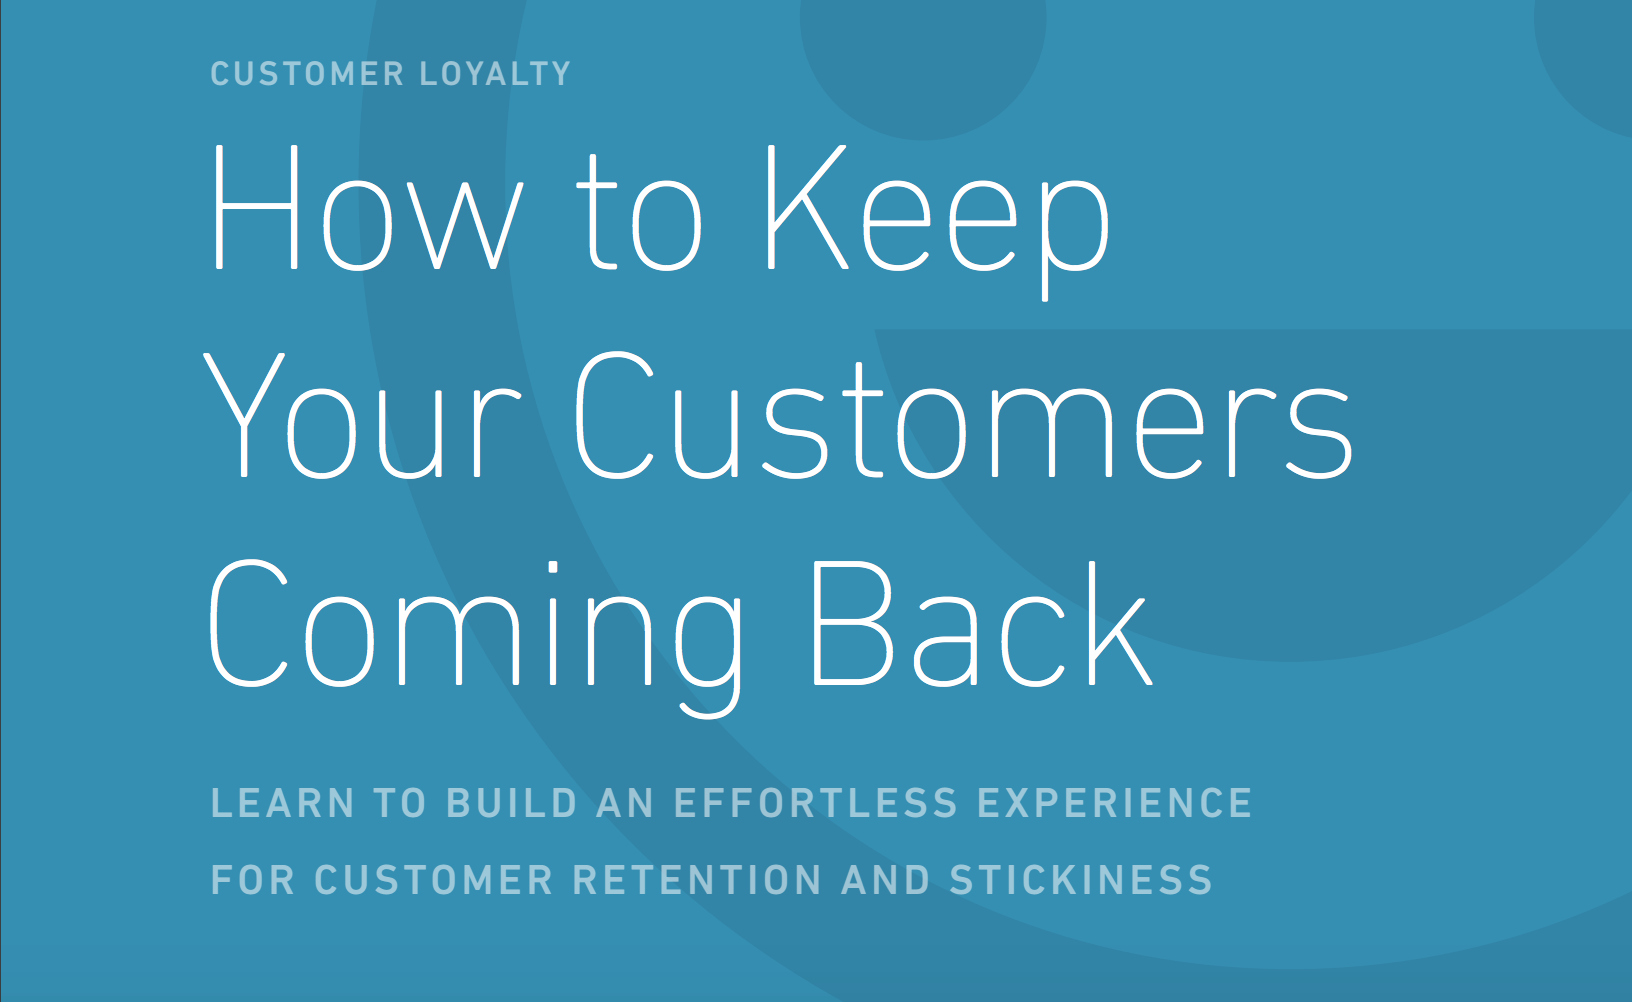 How To Keep Your Customersing Back